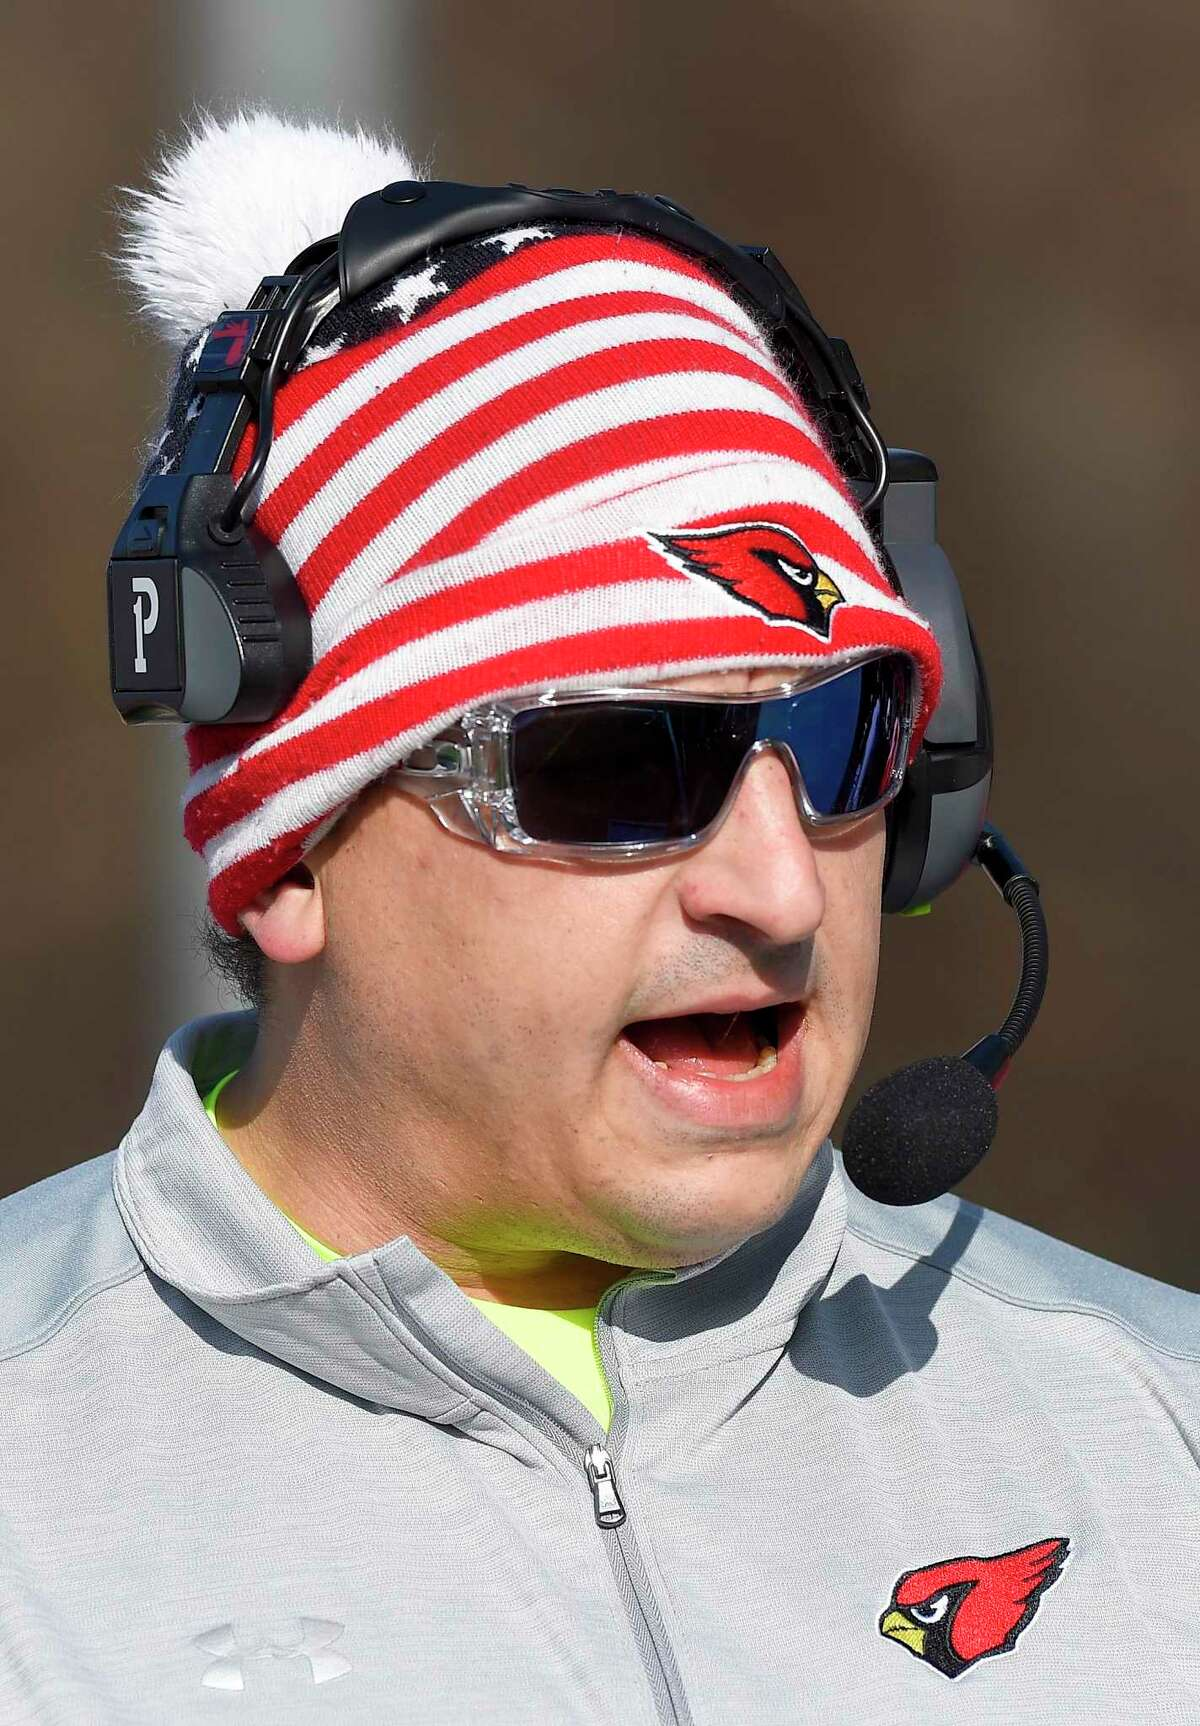 Greenwich football coach Anthony Morello says that his team will have to be evaluated from top to bottom after not having played 11-on-11 football since 2019.